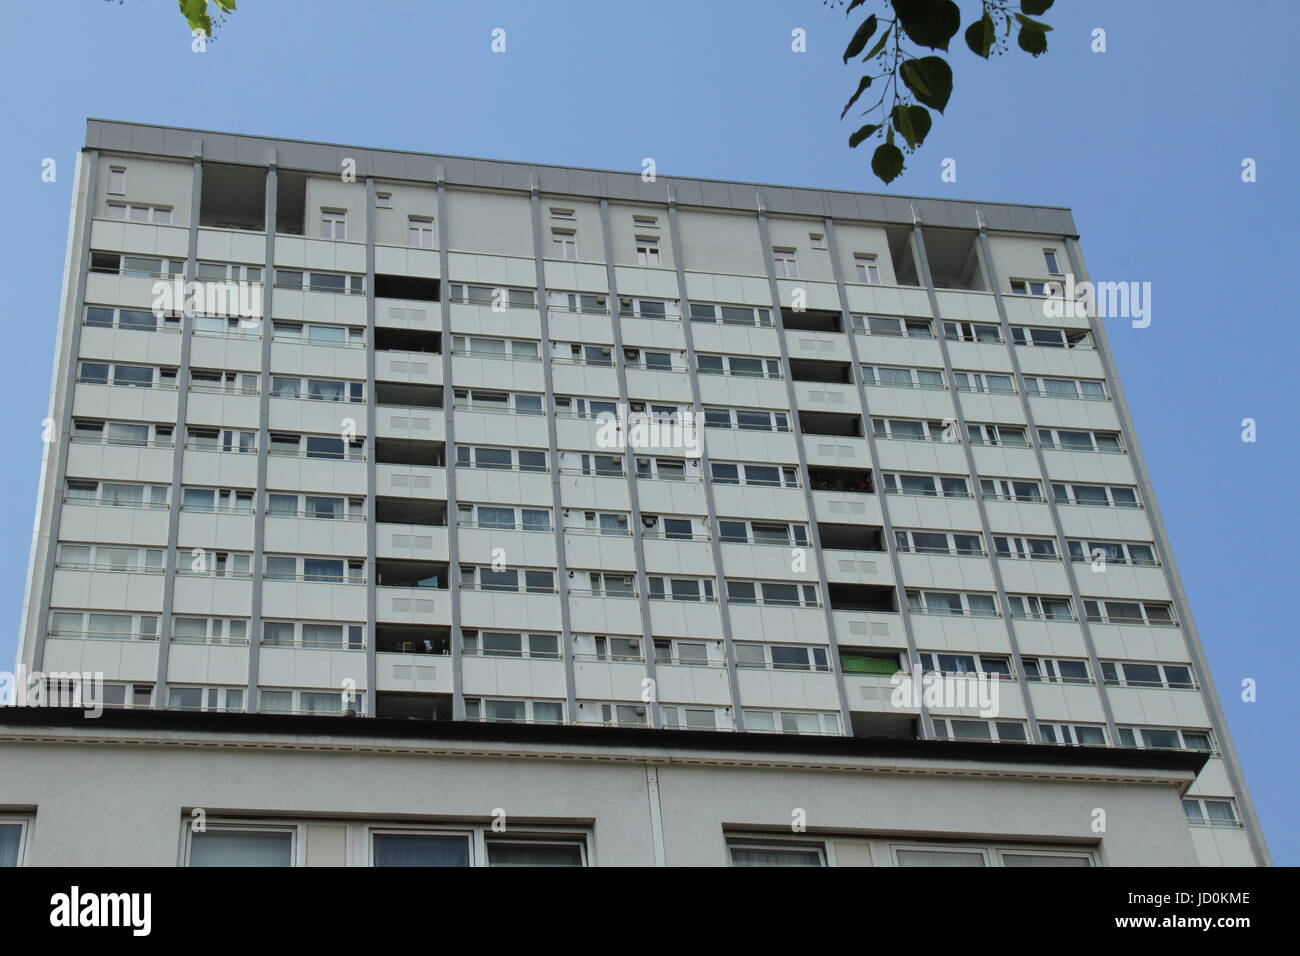 London, UK. 16th June, 2017. A tower block with cladding located in the borough of Kensington and Chelsea. Credit: - Stock Image